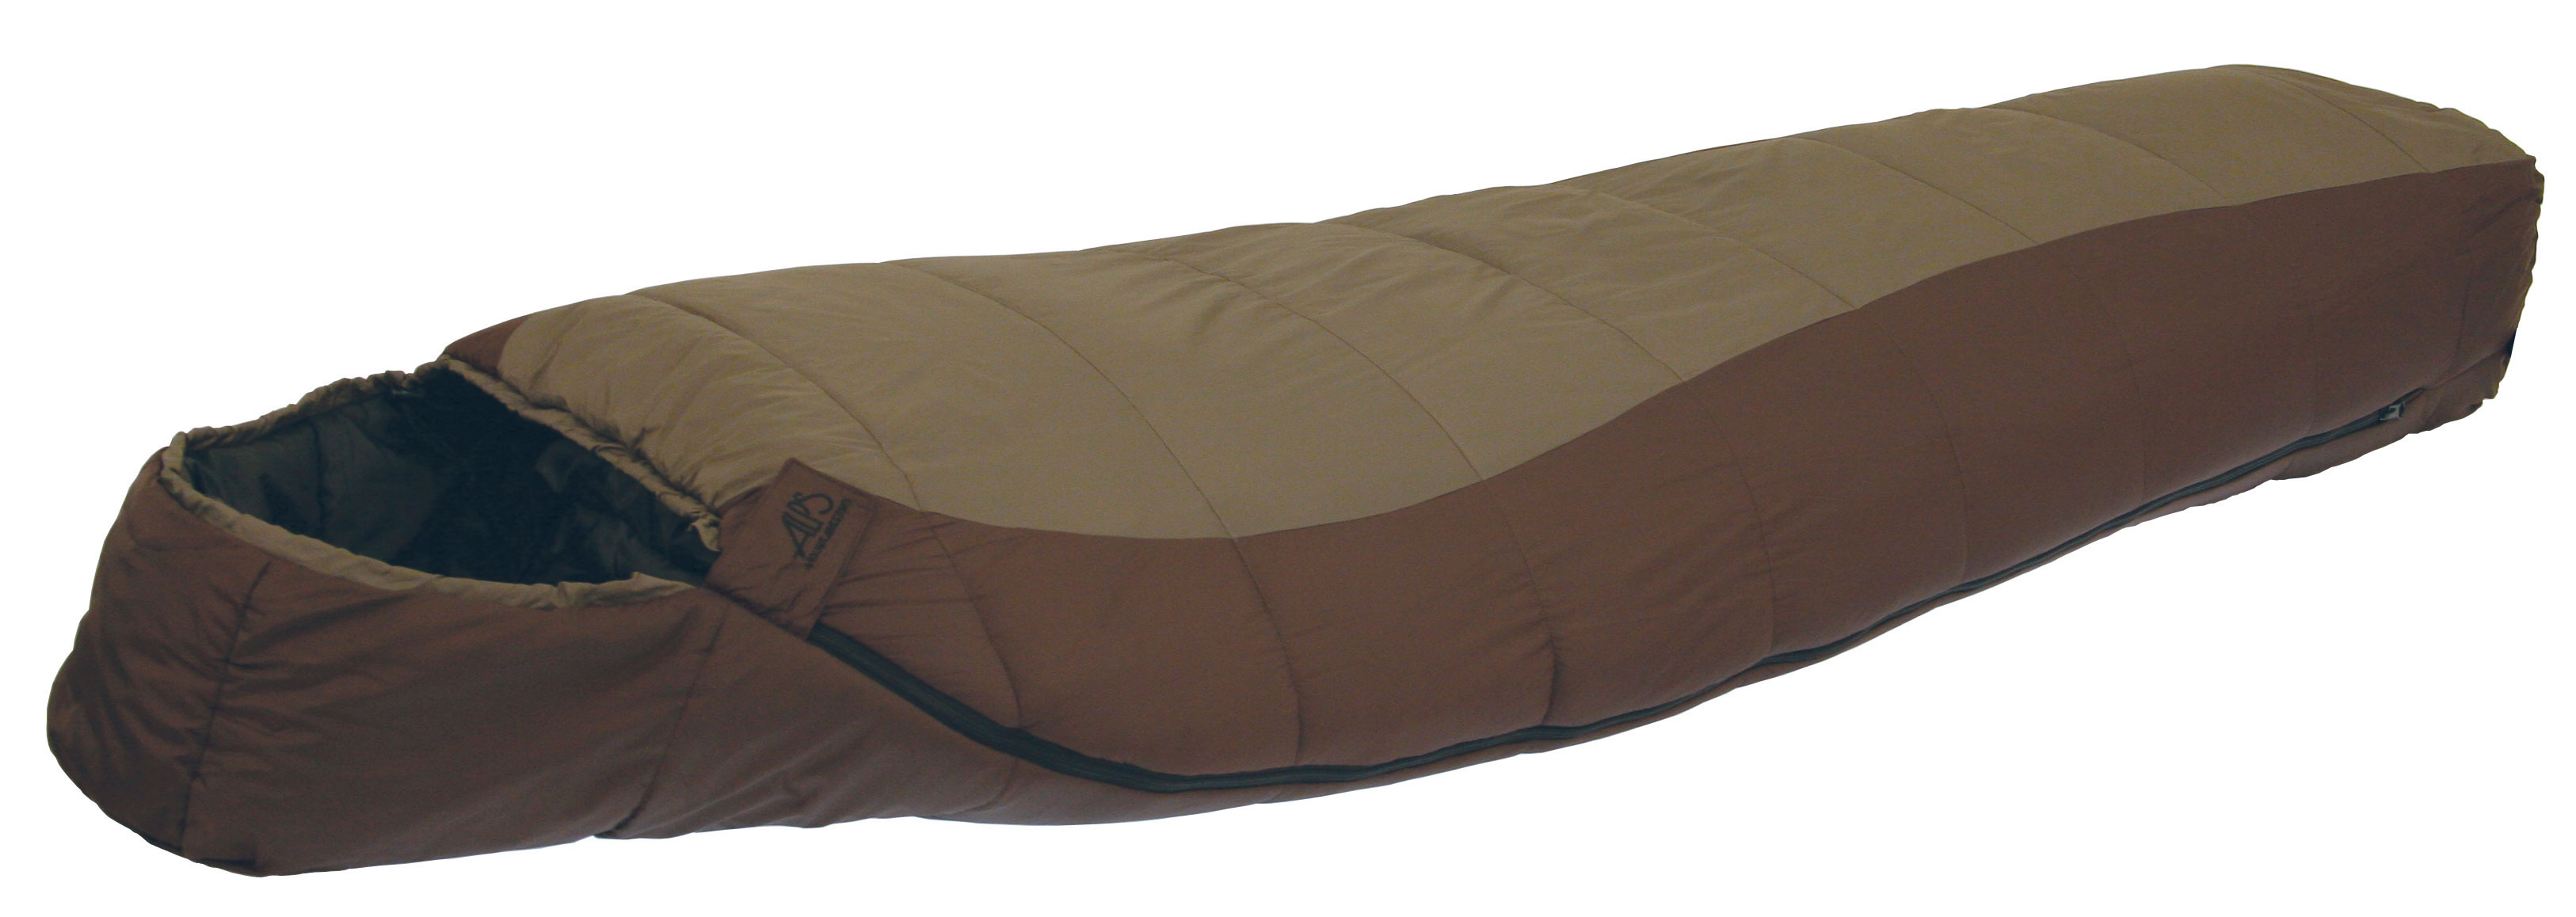 "Camp and Hike The Desert Pine series sleeping bags are made with Techloft+ insulation. Techloft+ Insulation consists of multi-hole staple-length micro-denier fibers that have a siliconized finish for maximum insulation, loft, and compactness. The Desert Pine uses a 2-layer offset construction, sometimes called a ""bag within a bag."" The contoured hood and mummy shape helps seal up your warmth and keep you warmer. The Desert Pine is a great backpacking sleeping bag to take along on your hikes that won't take up all the space in your pack.Key Features of the Alps Desert Pine -20 Regular Sleeping Bag: TechLoft+ - 2 Layer Offset Insulated Chest Baffle Zipper Baffle Contoured Hood Compression Stuff Sack Included Outer Material: 210T Nylon Ripstop Outer Color: Brown Liner: 210T Polyester Liner Color: Black Shape: Mummy Zipper: #8 Separating Length: Regular Dimensions: 32"" x 80"" Fill Weight: 84 oz Total Weight: 6 lb 12 oz - $99.95"